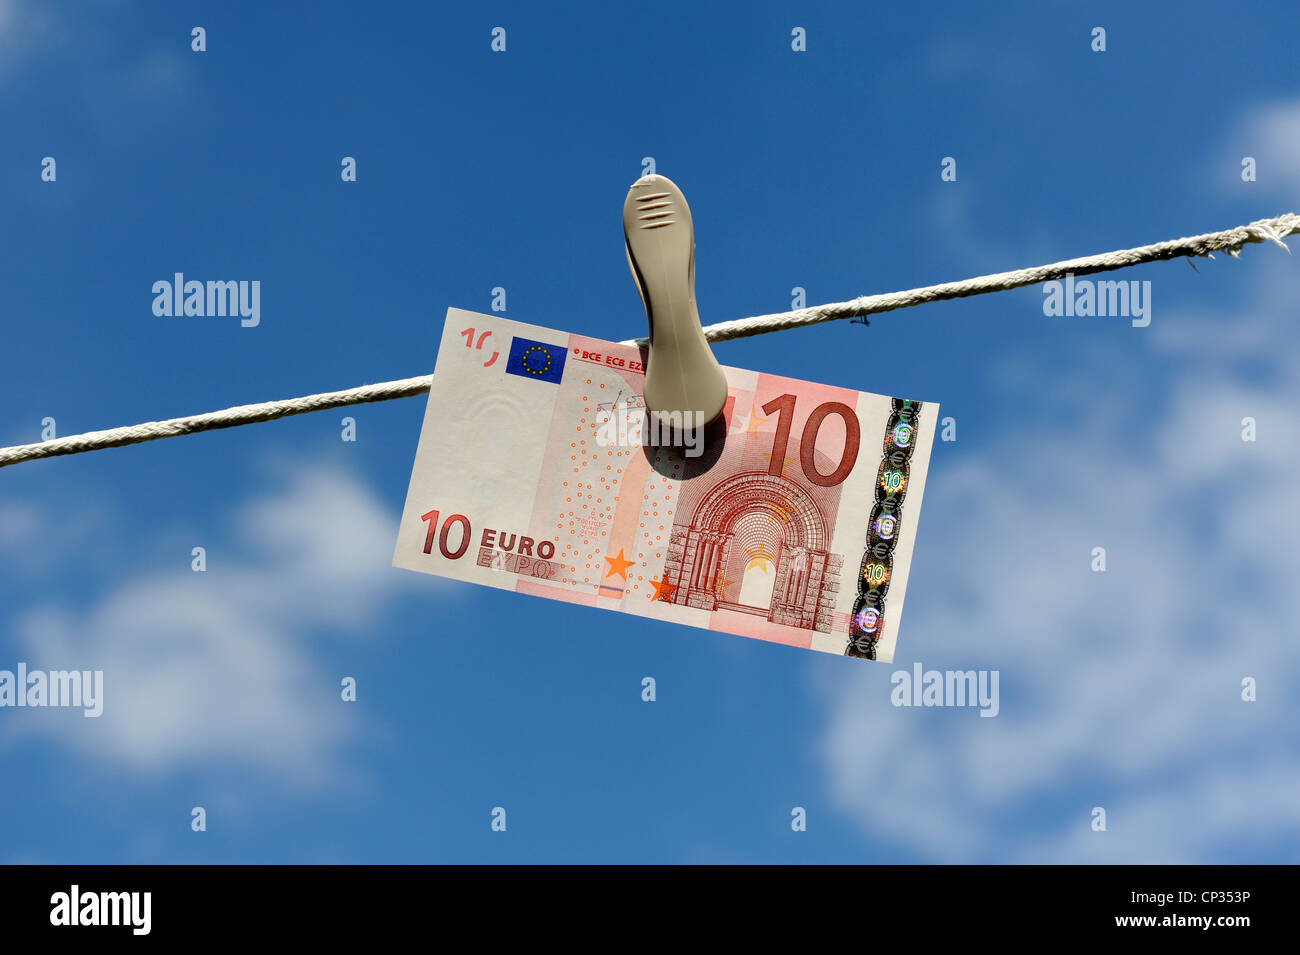 Euro note on a washing line with blue sky and clouds in the background england uk Stock Photo